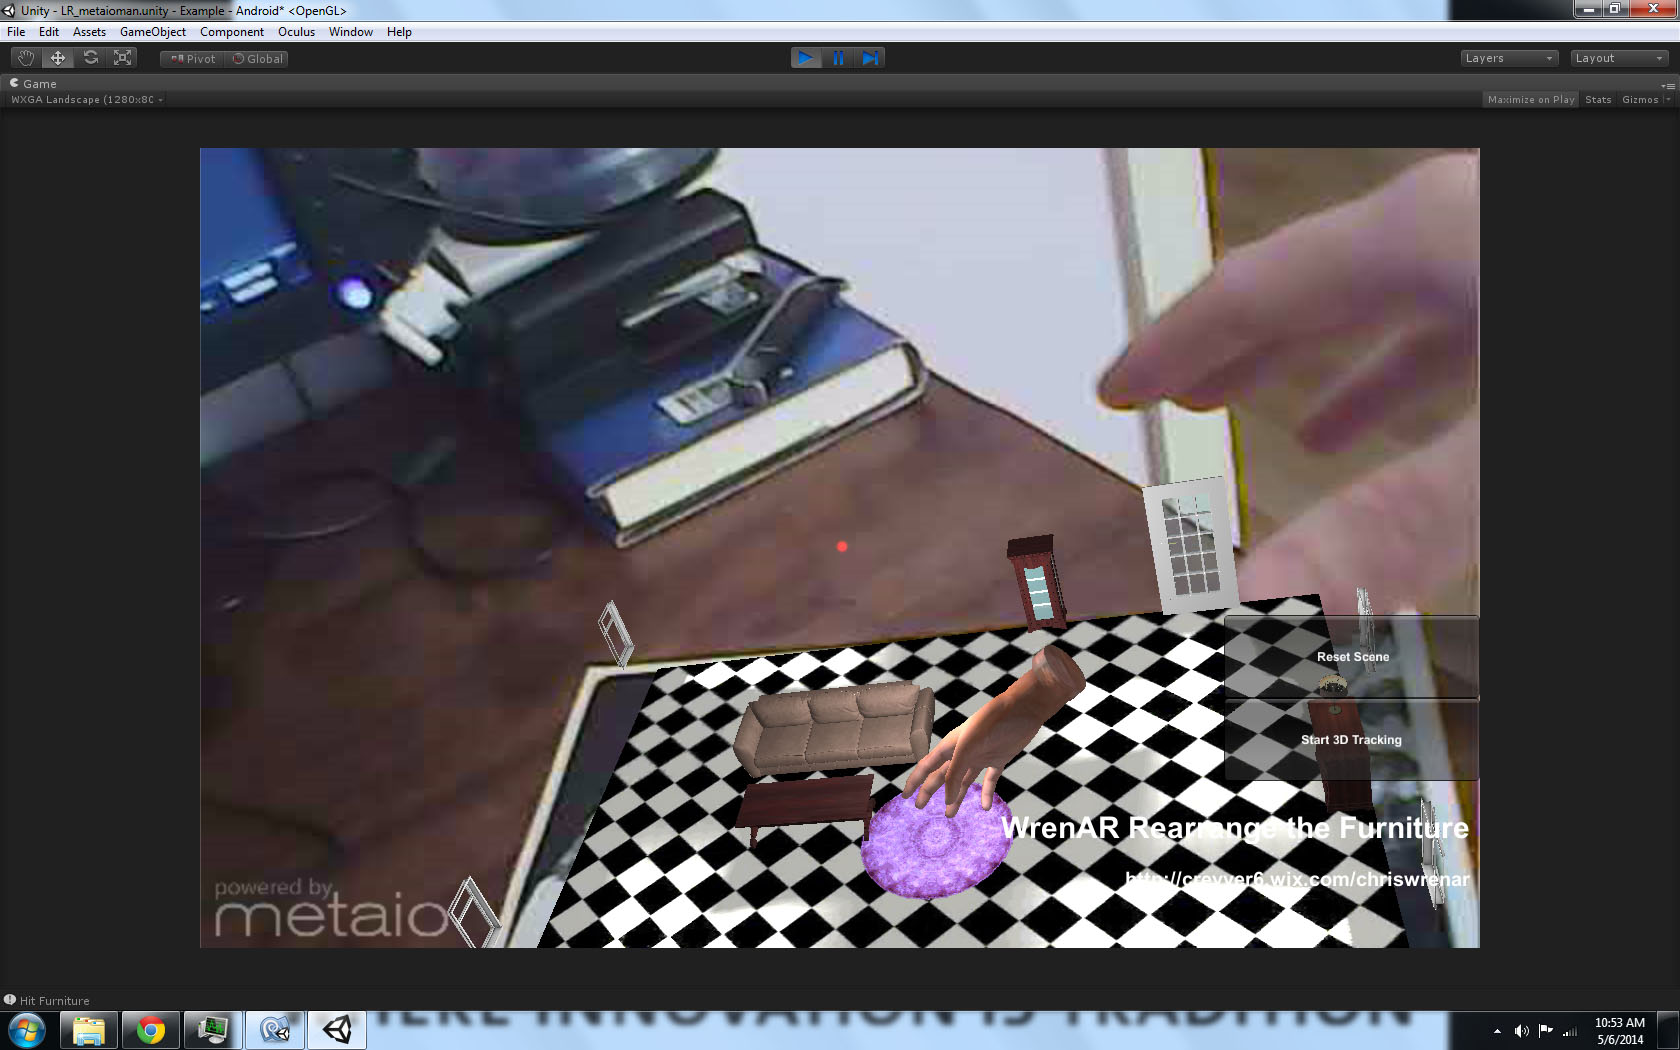 WrenAR_LR_Leap_Motion.jpg